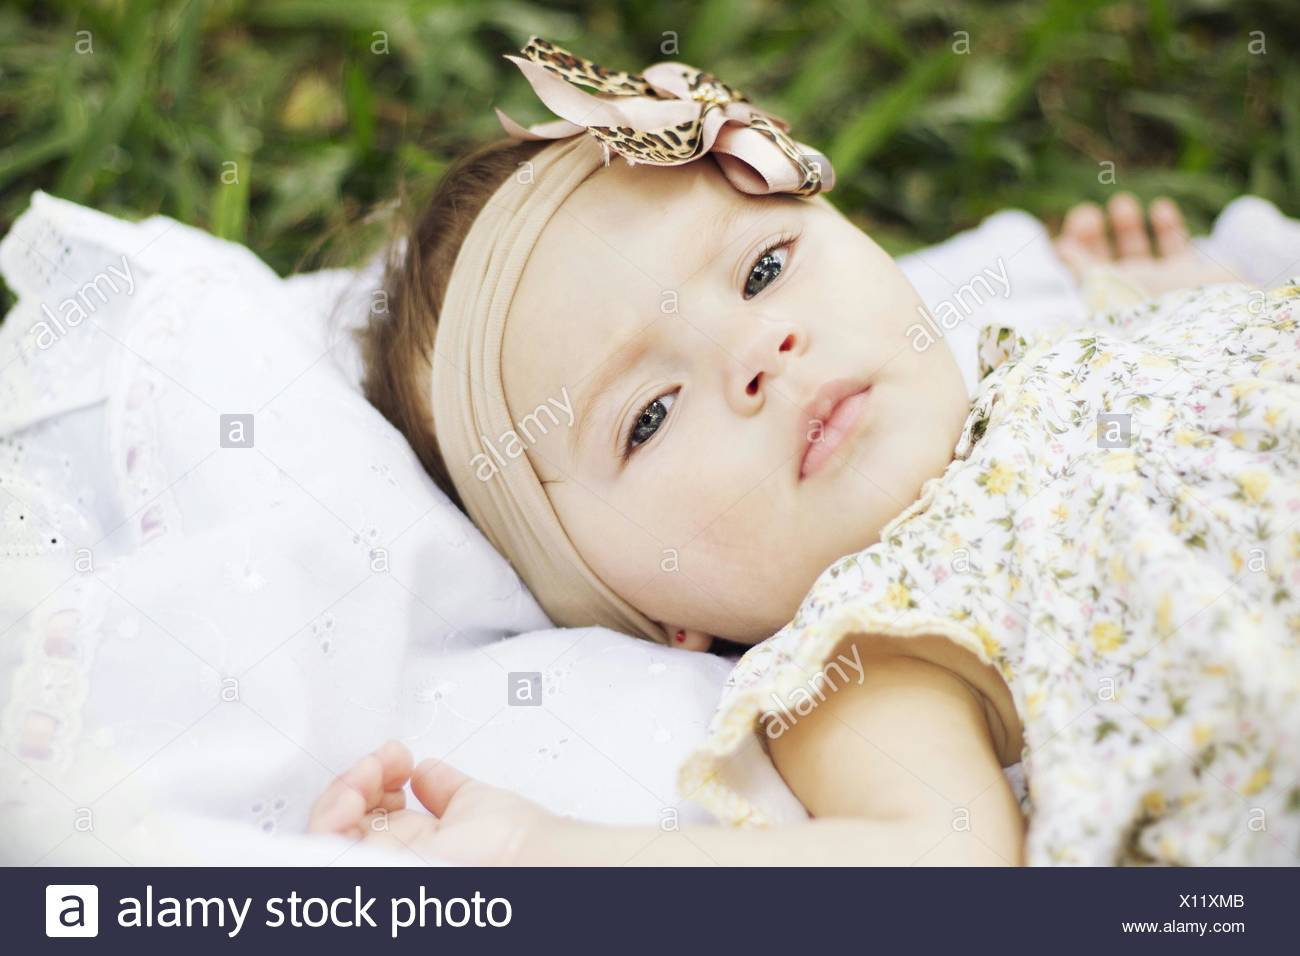 Portrait Of Baby Girl Lying Outdoors - Stock Image